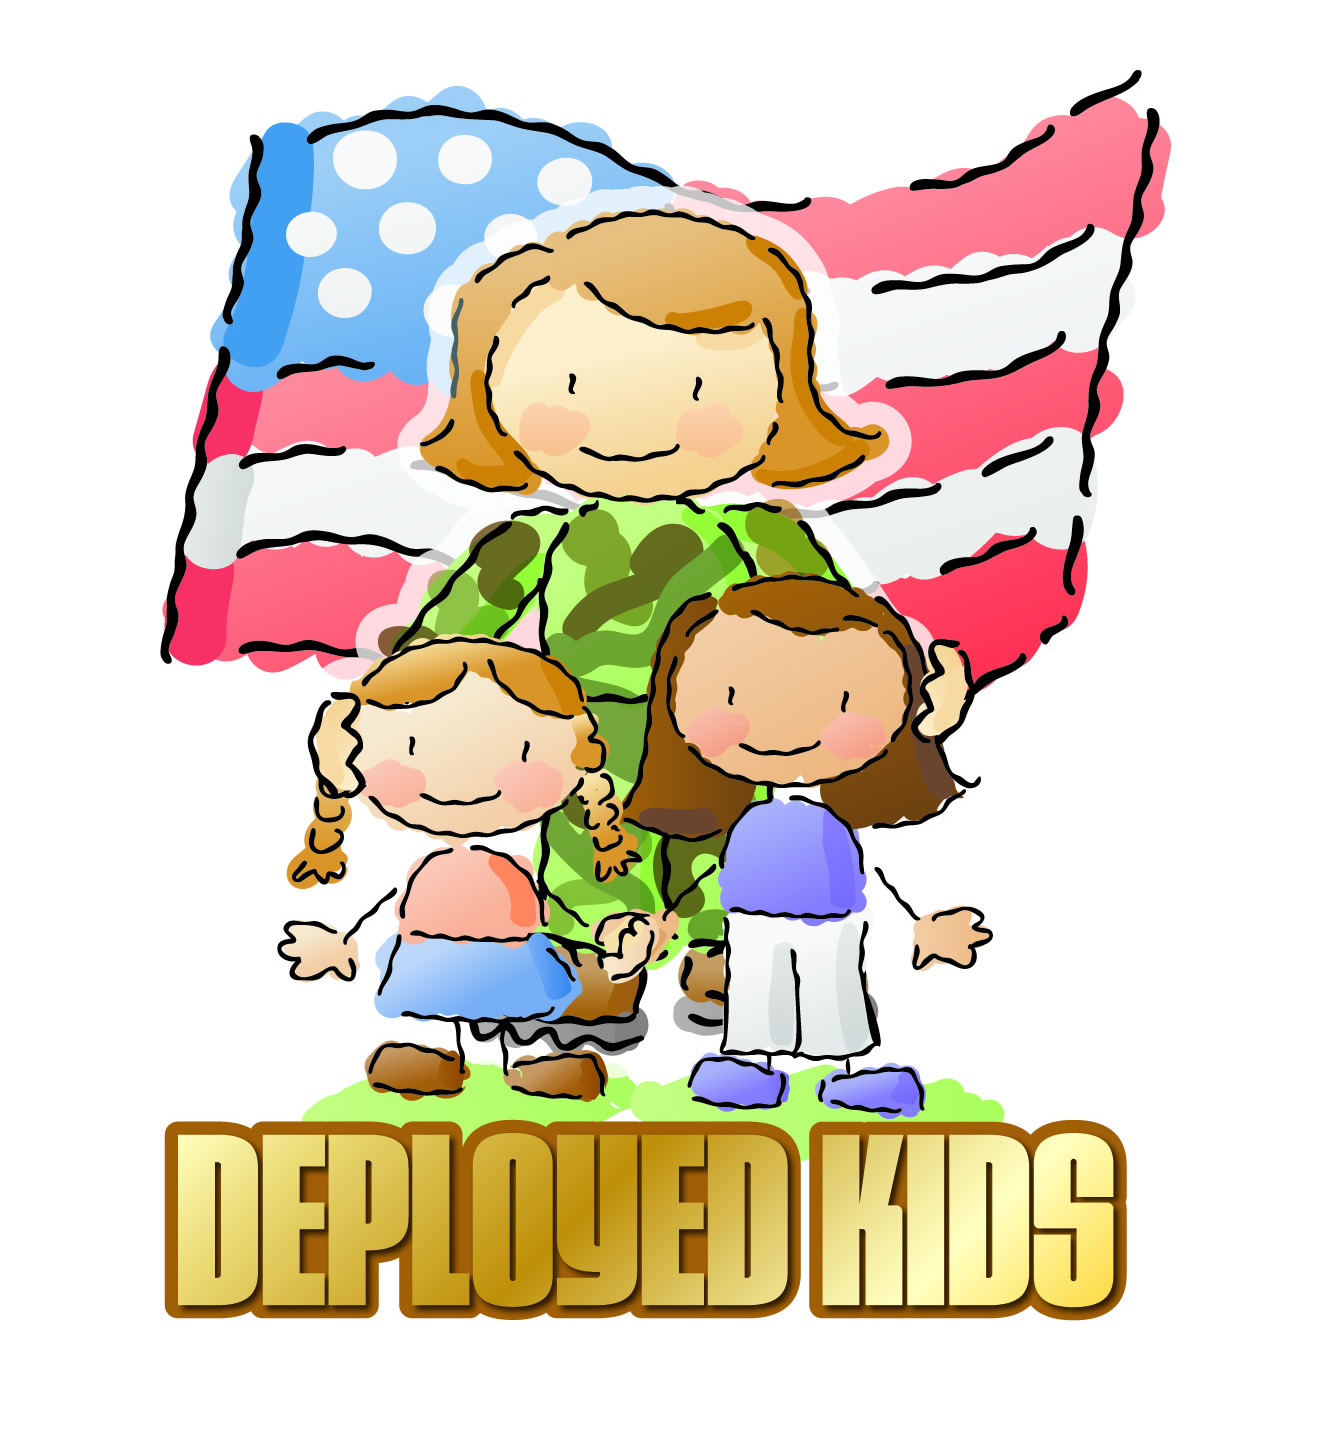 Deployed Kids